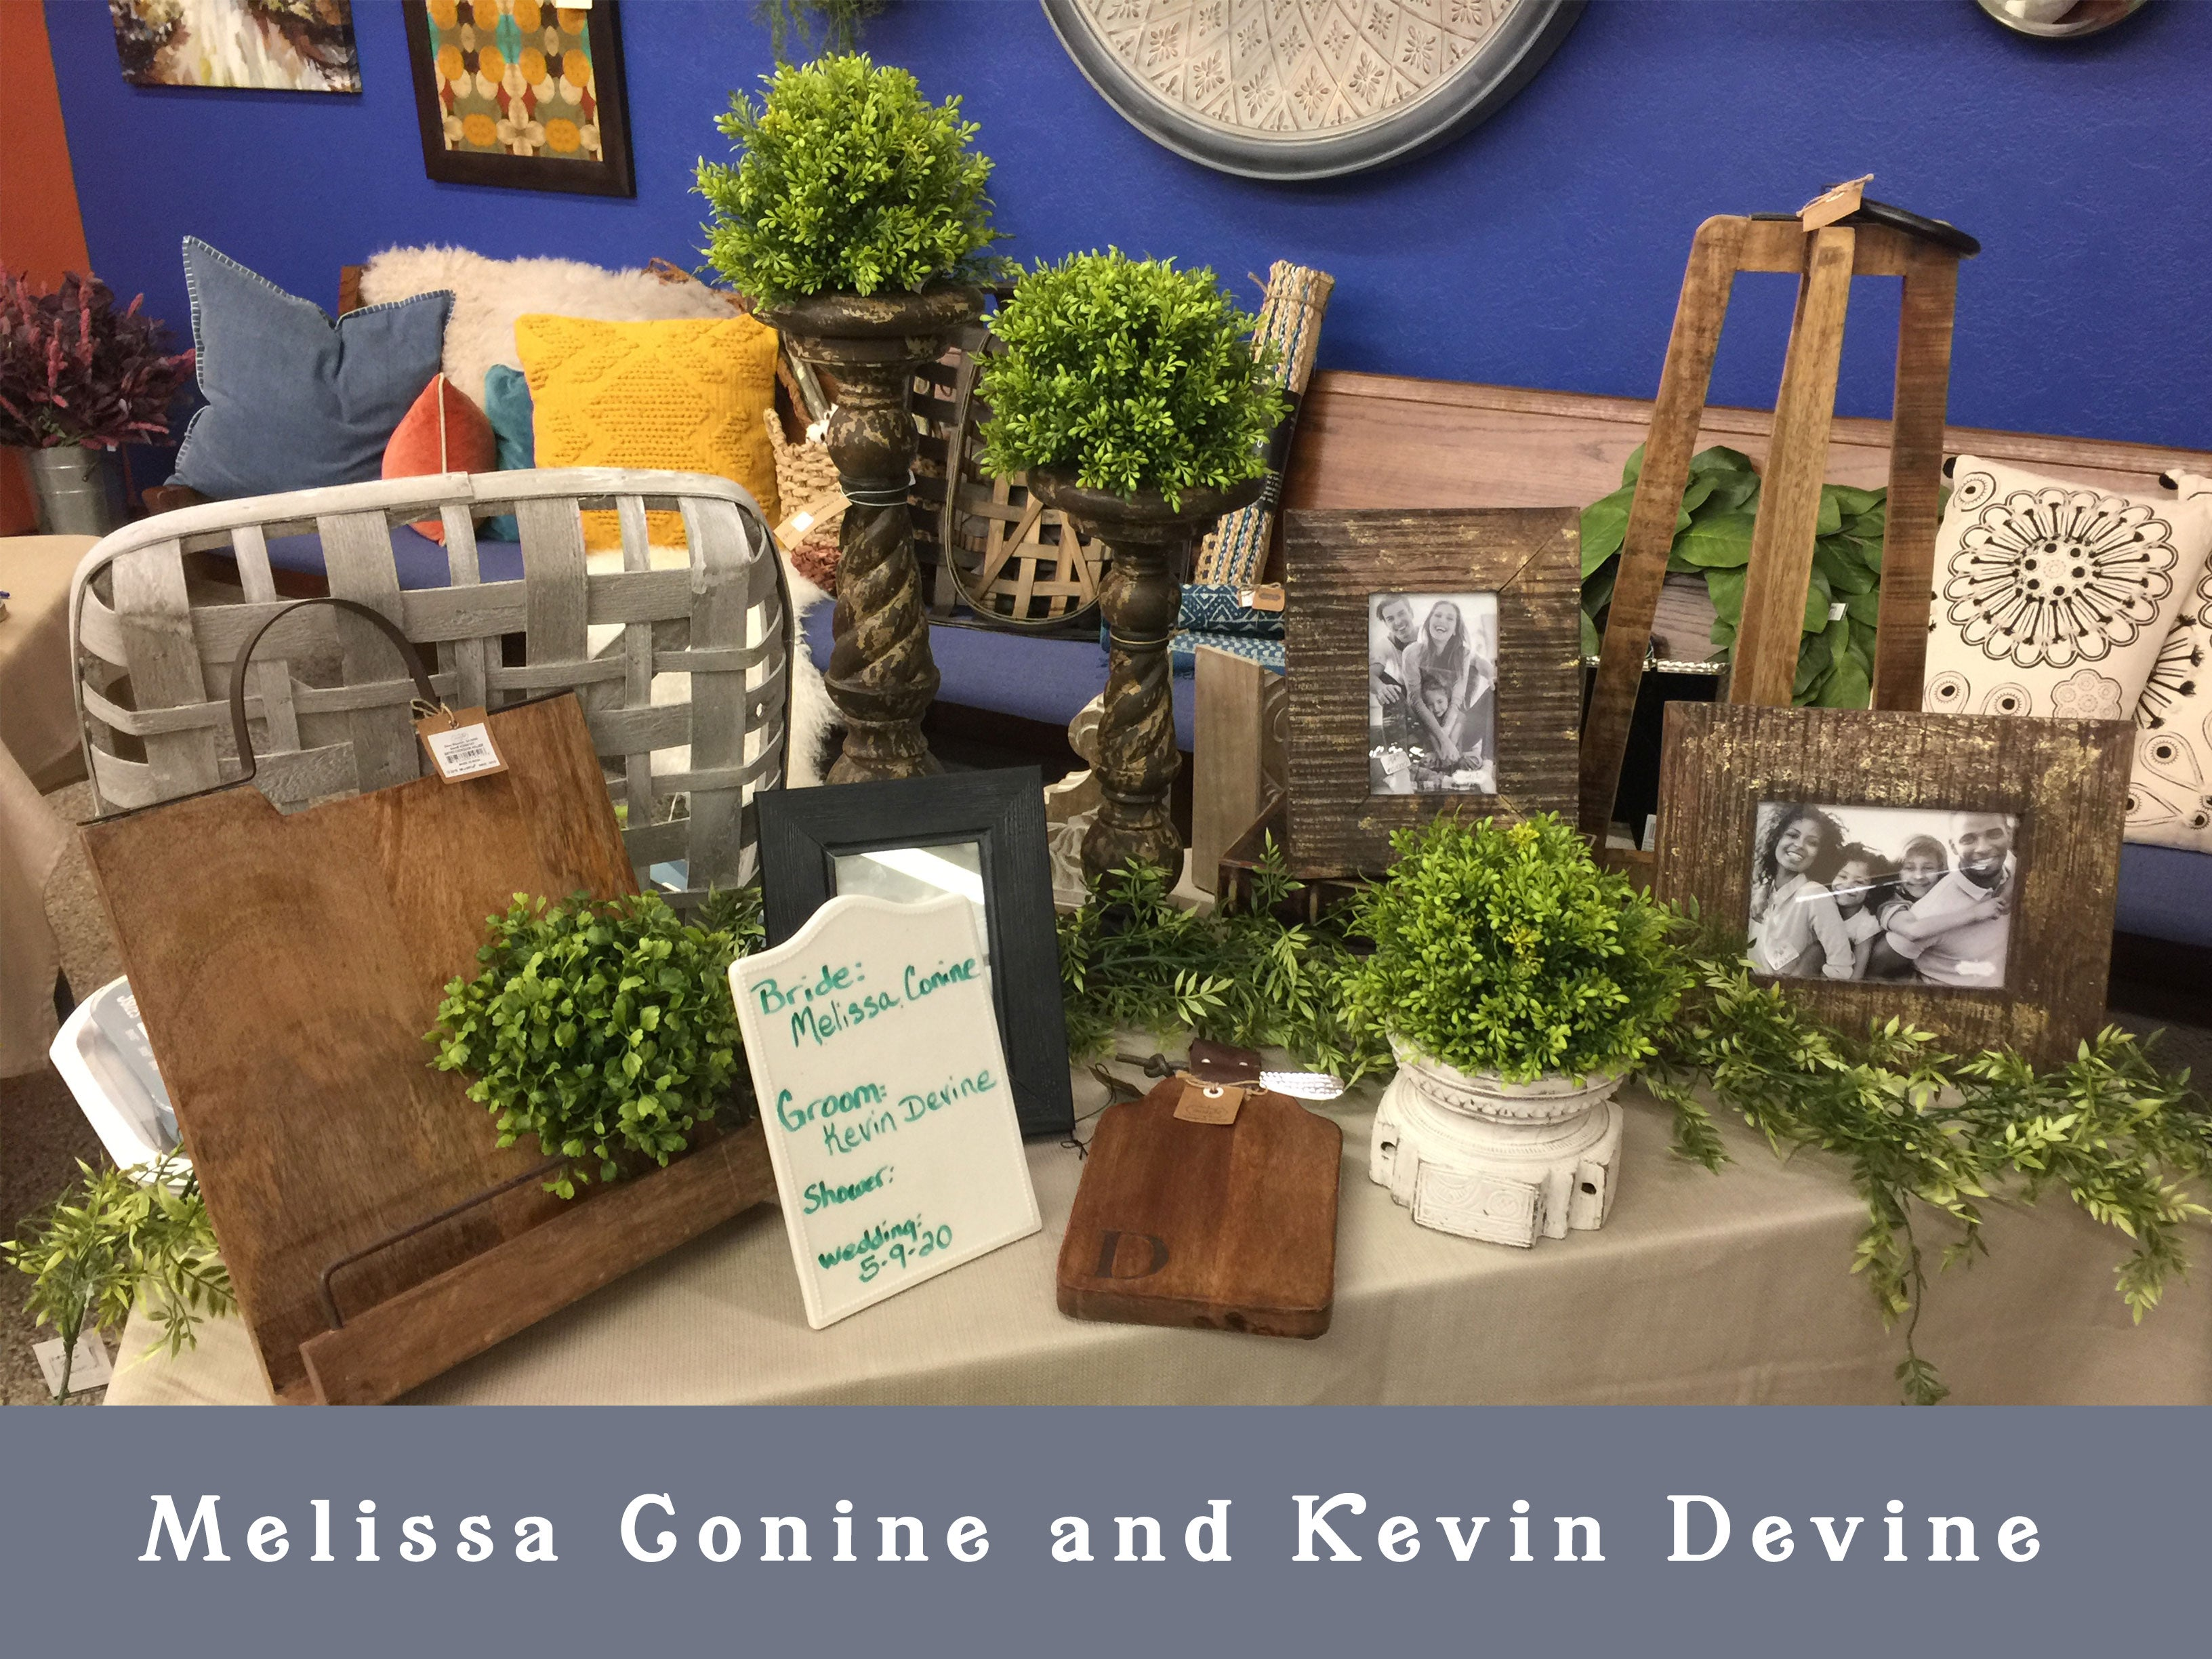 Melissa Conine and Kevin Devine